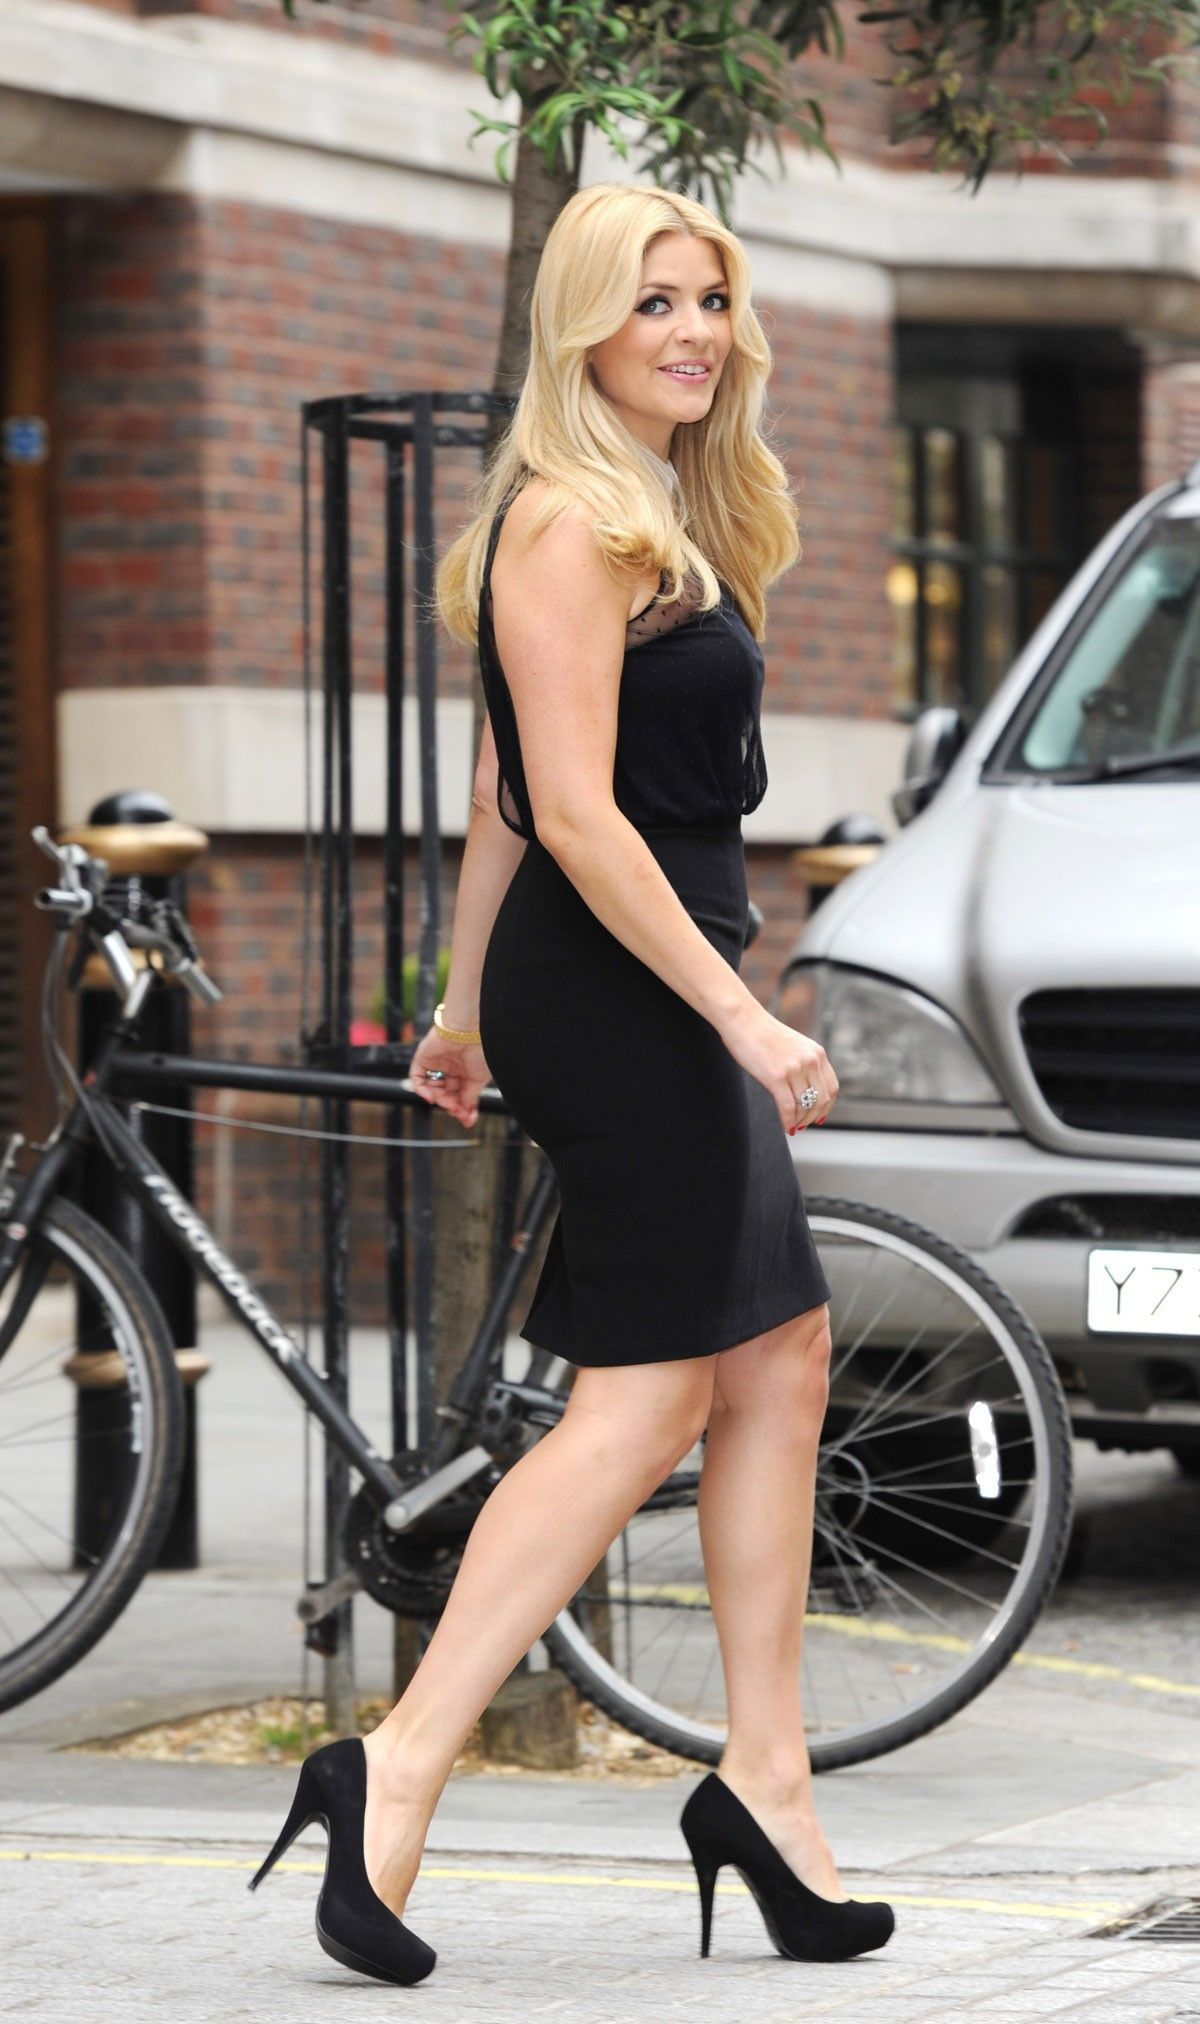 Holly Willoughby Nudes with regard to holly willoughby | presenter | pinterest | holly willoughby style